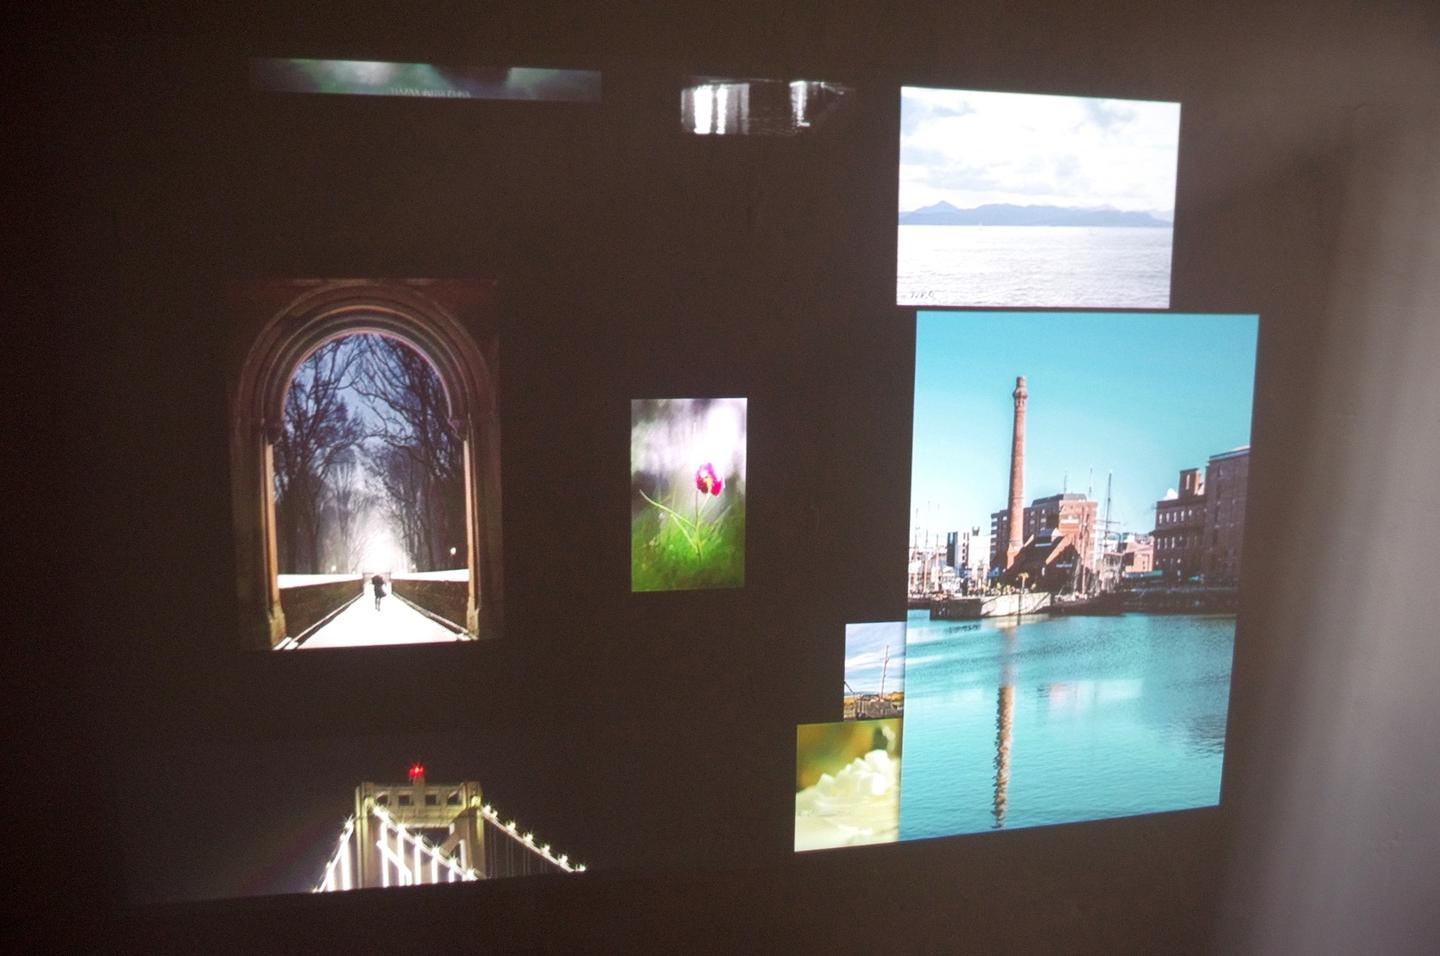 The projector works great at displaying videos and photos, like these from the Apple TV screensaver